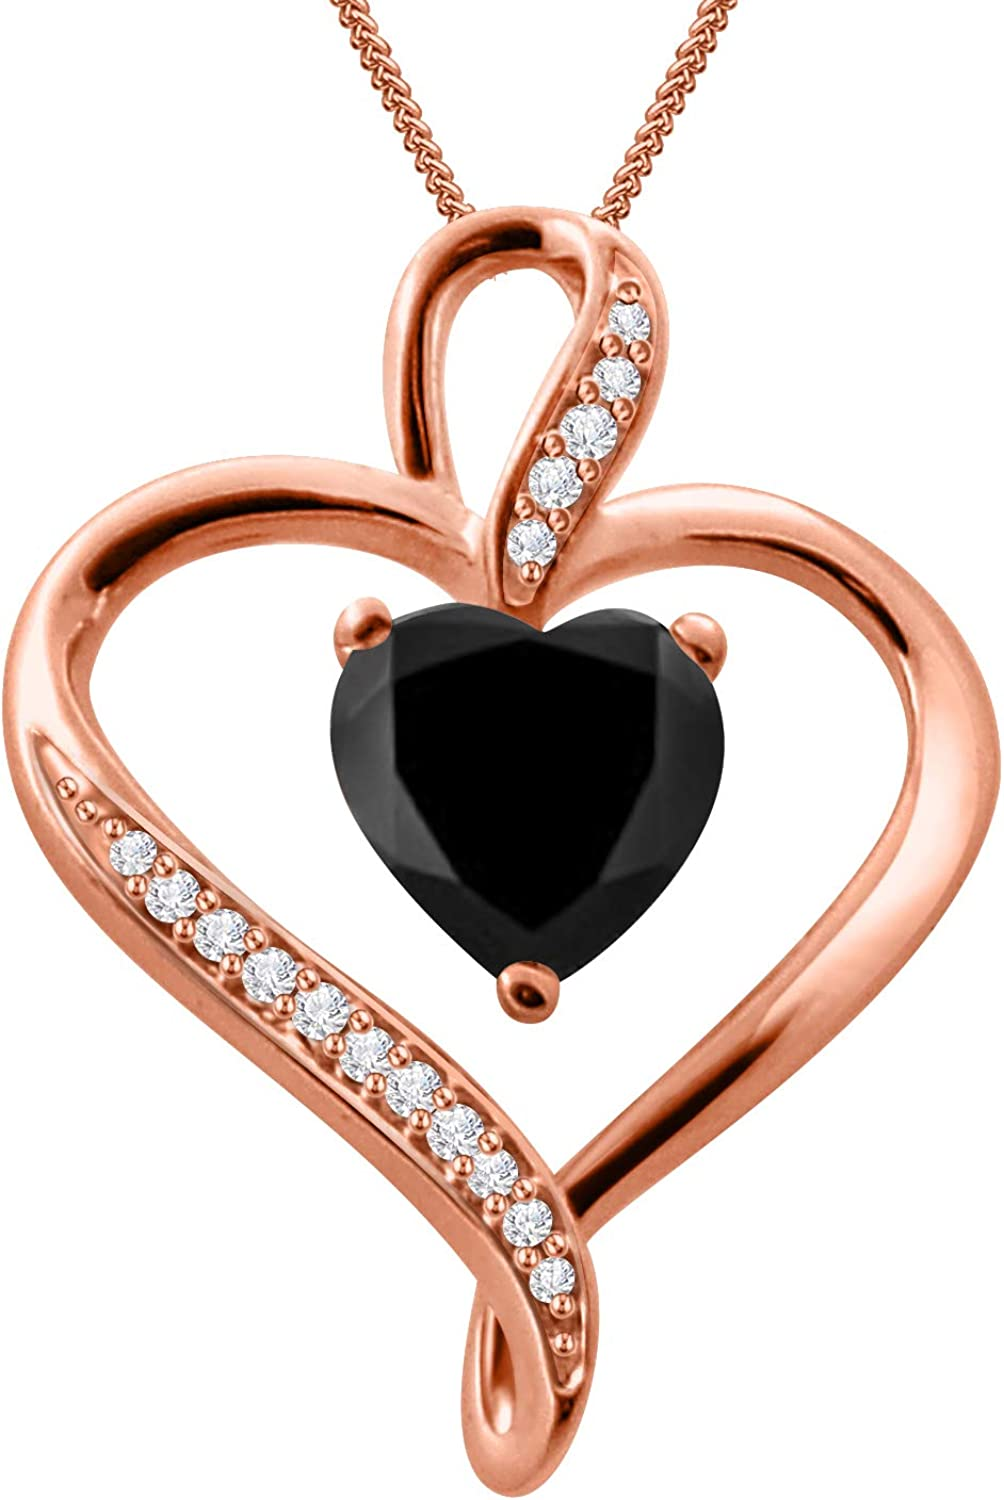 18 inch Diamond Scotch Round Simulated Diamond Cubic Zirconia Infinity Heart Pendant Necklace in 14k White Gold Over